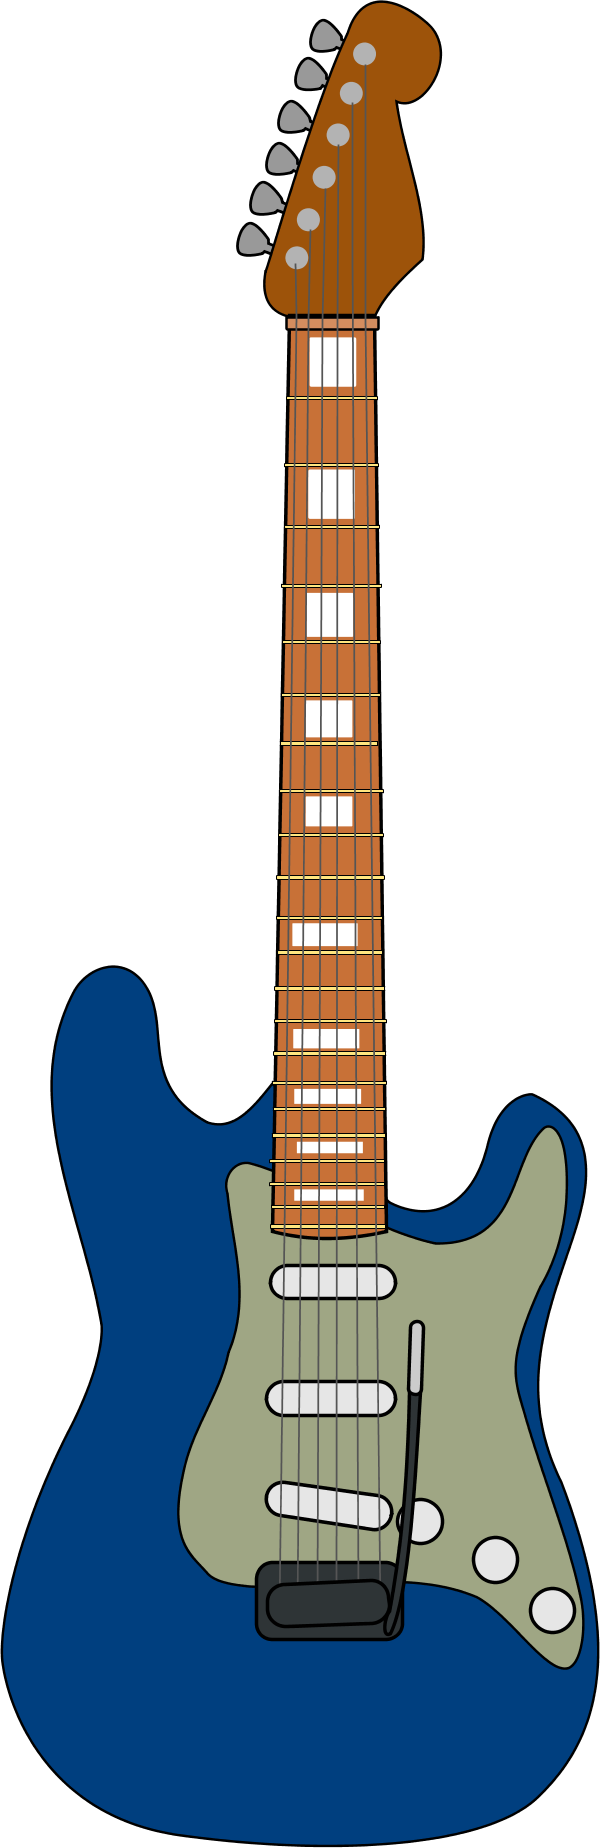 Wooden guitar vector clip art